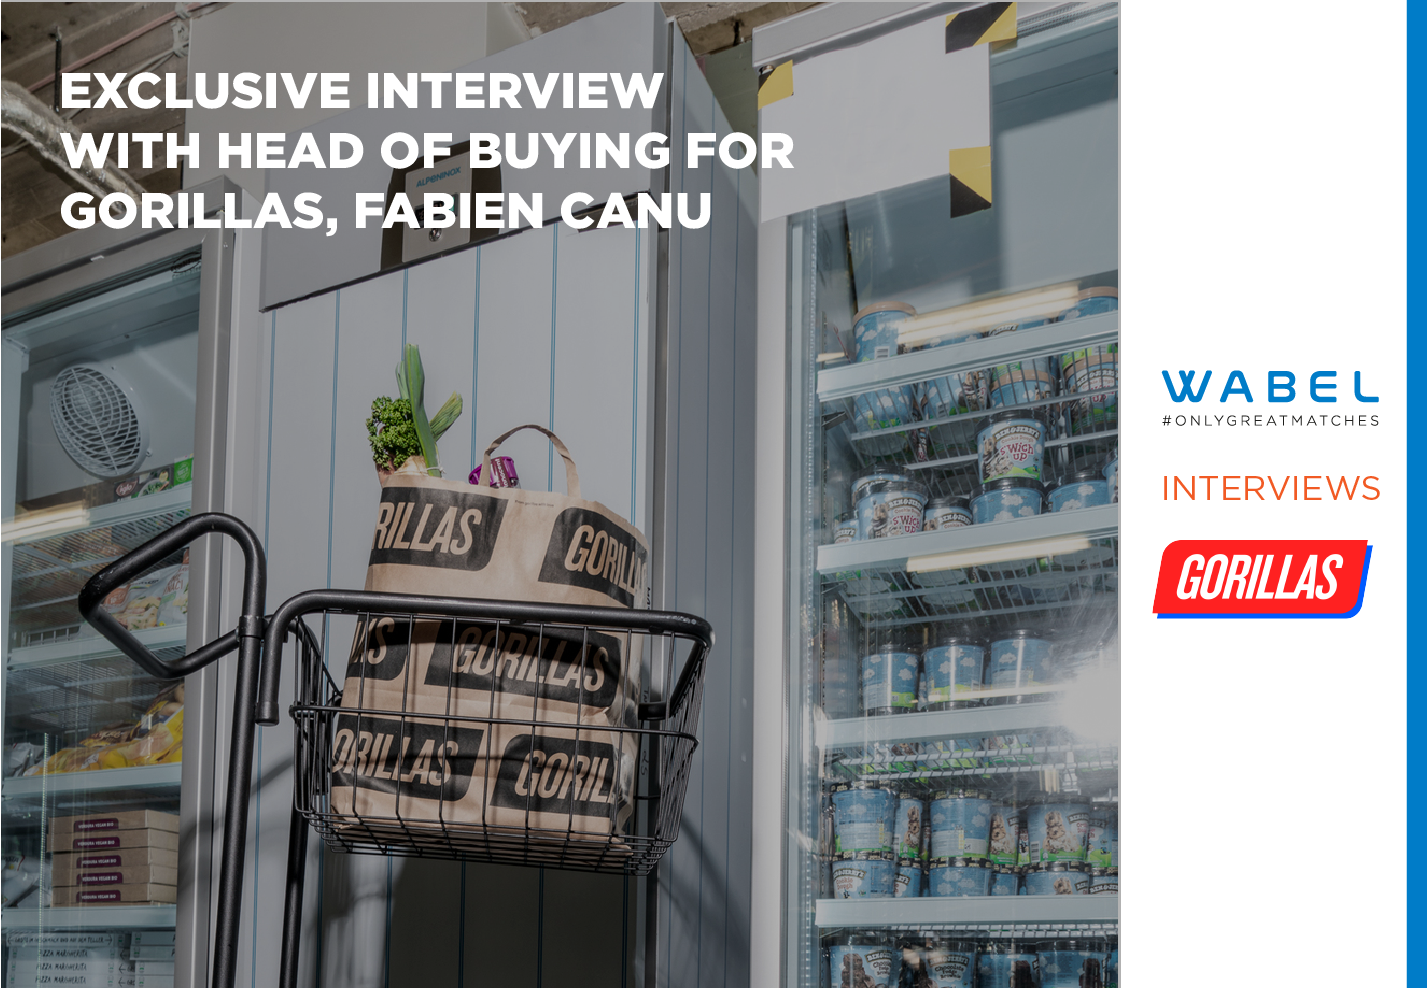 Exclusive Interview with Gorillas, the European Unicorn of On-Demand Grocery Delivery